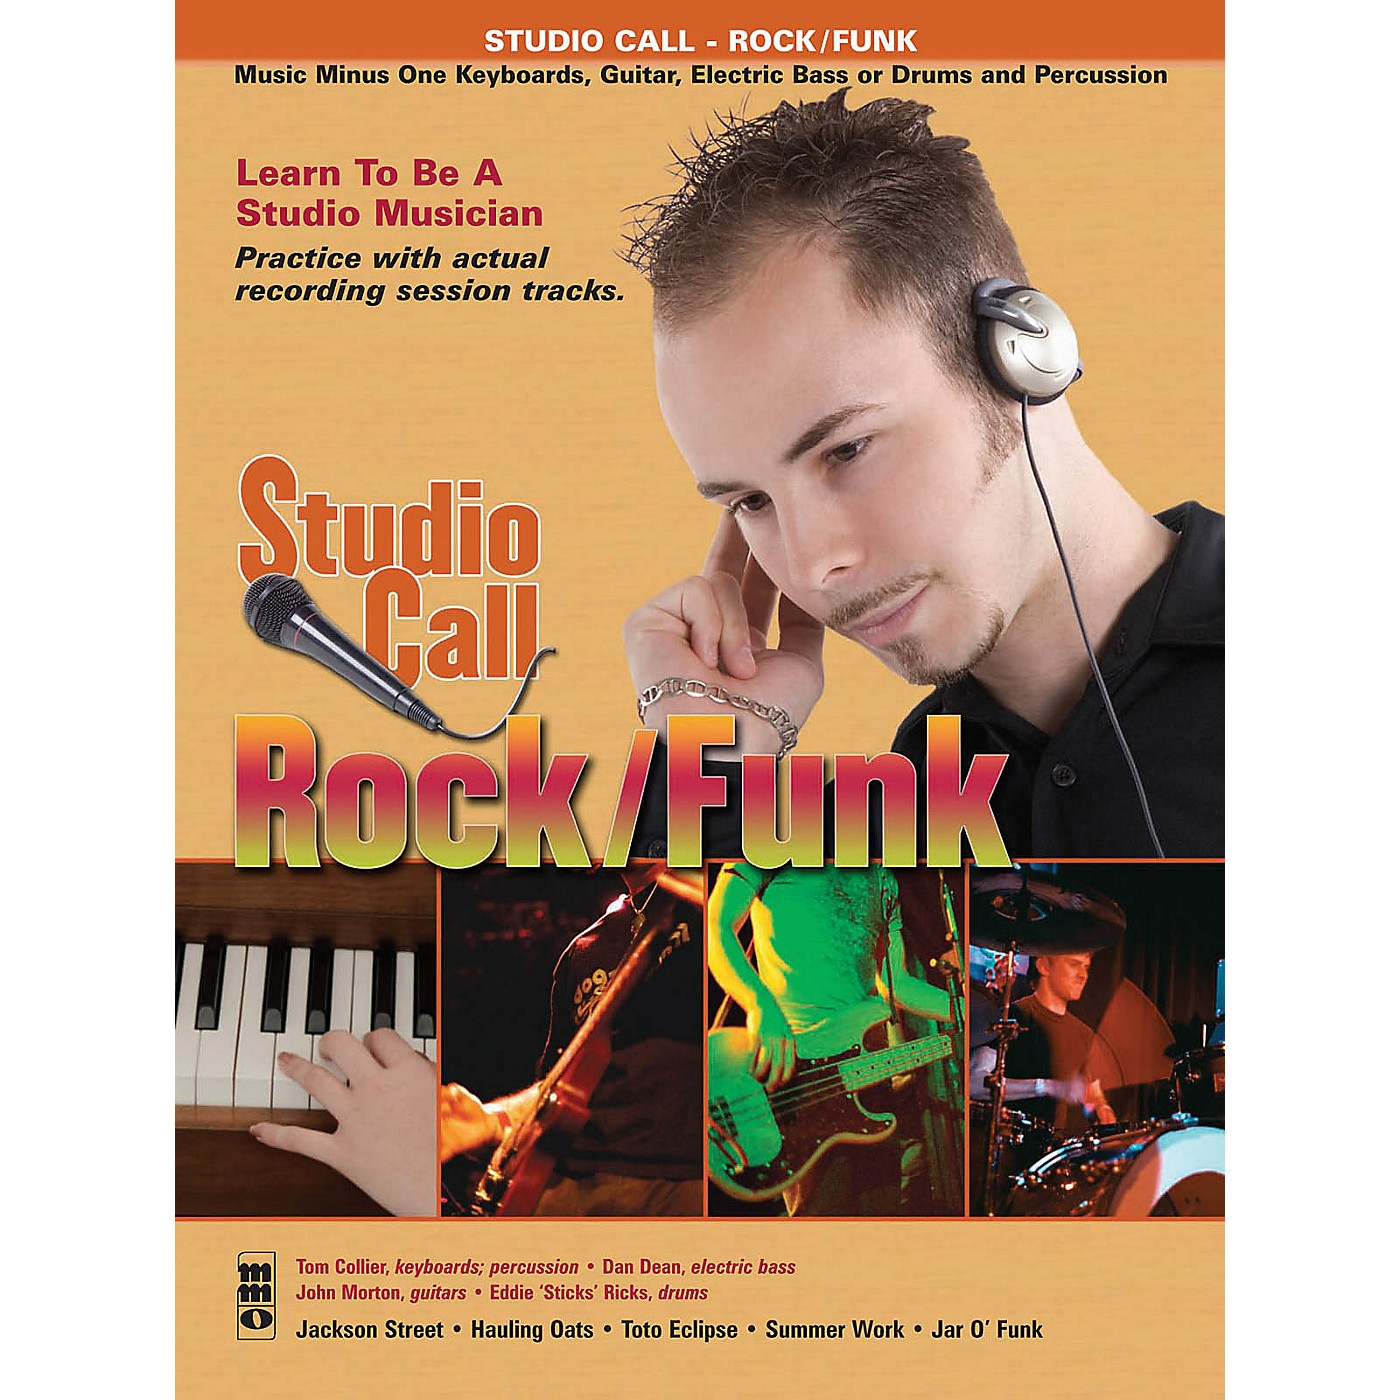 Music Minus One Studio Call: Rock/Funk - Piano (Learn to Be a Studio Musician!) Music Minus One Series Softcover with CD thumbnail